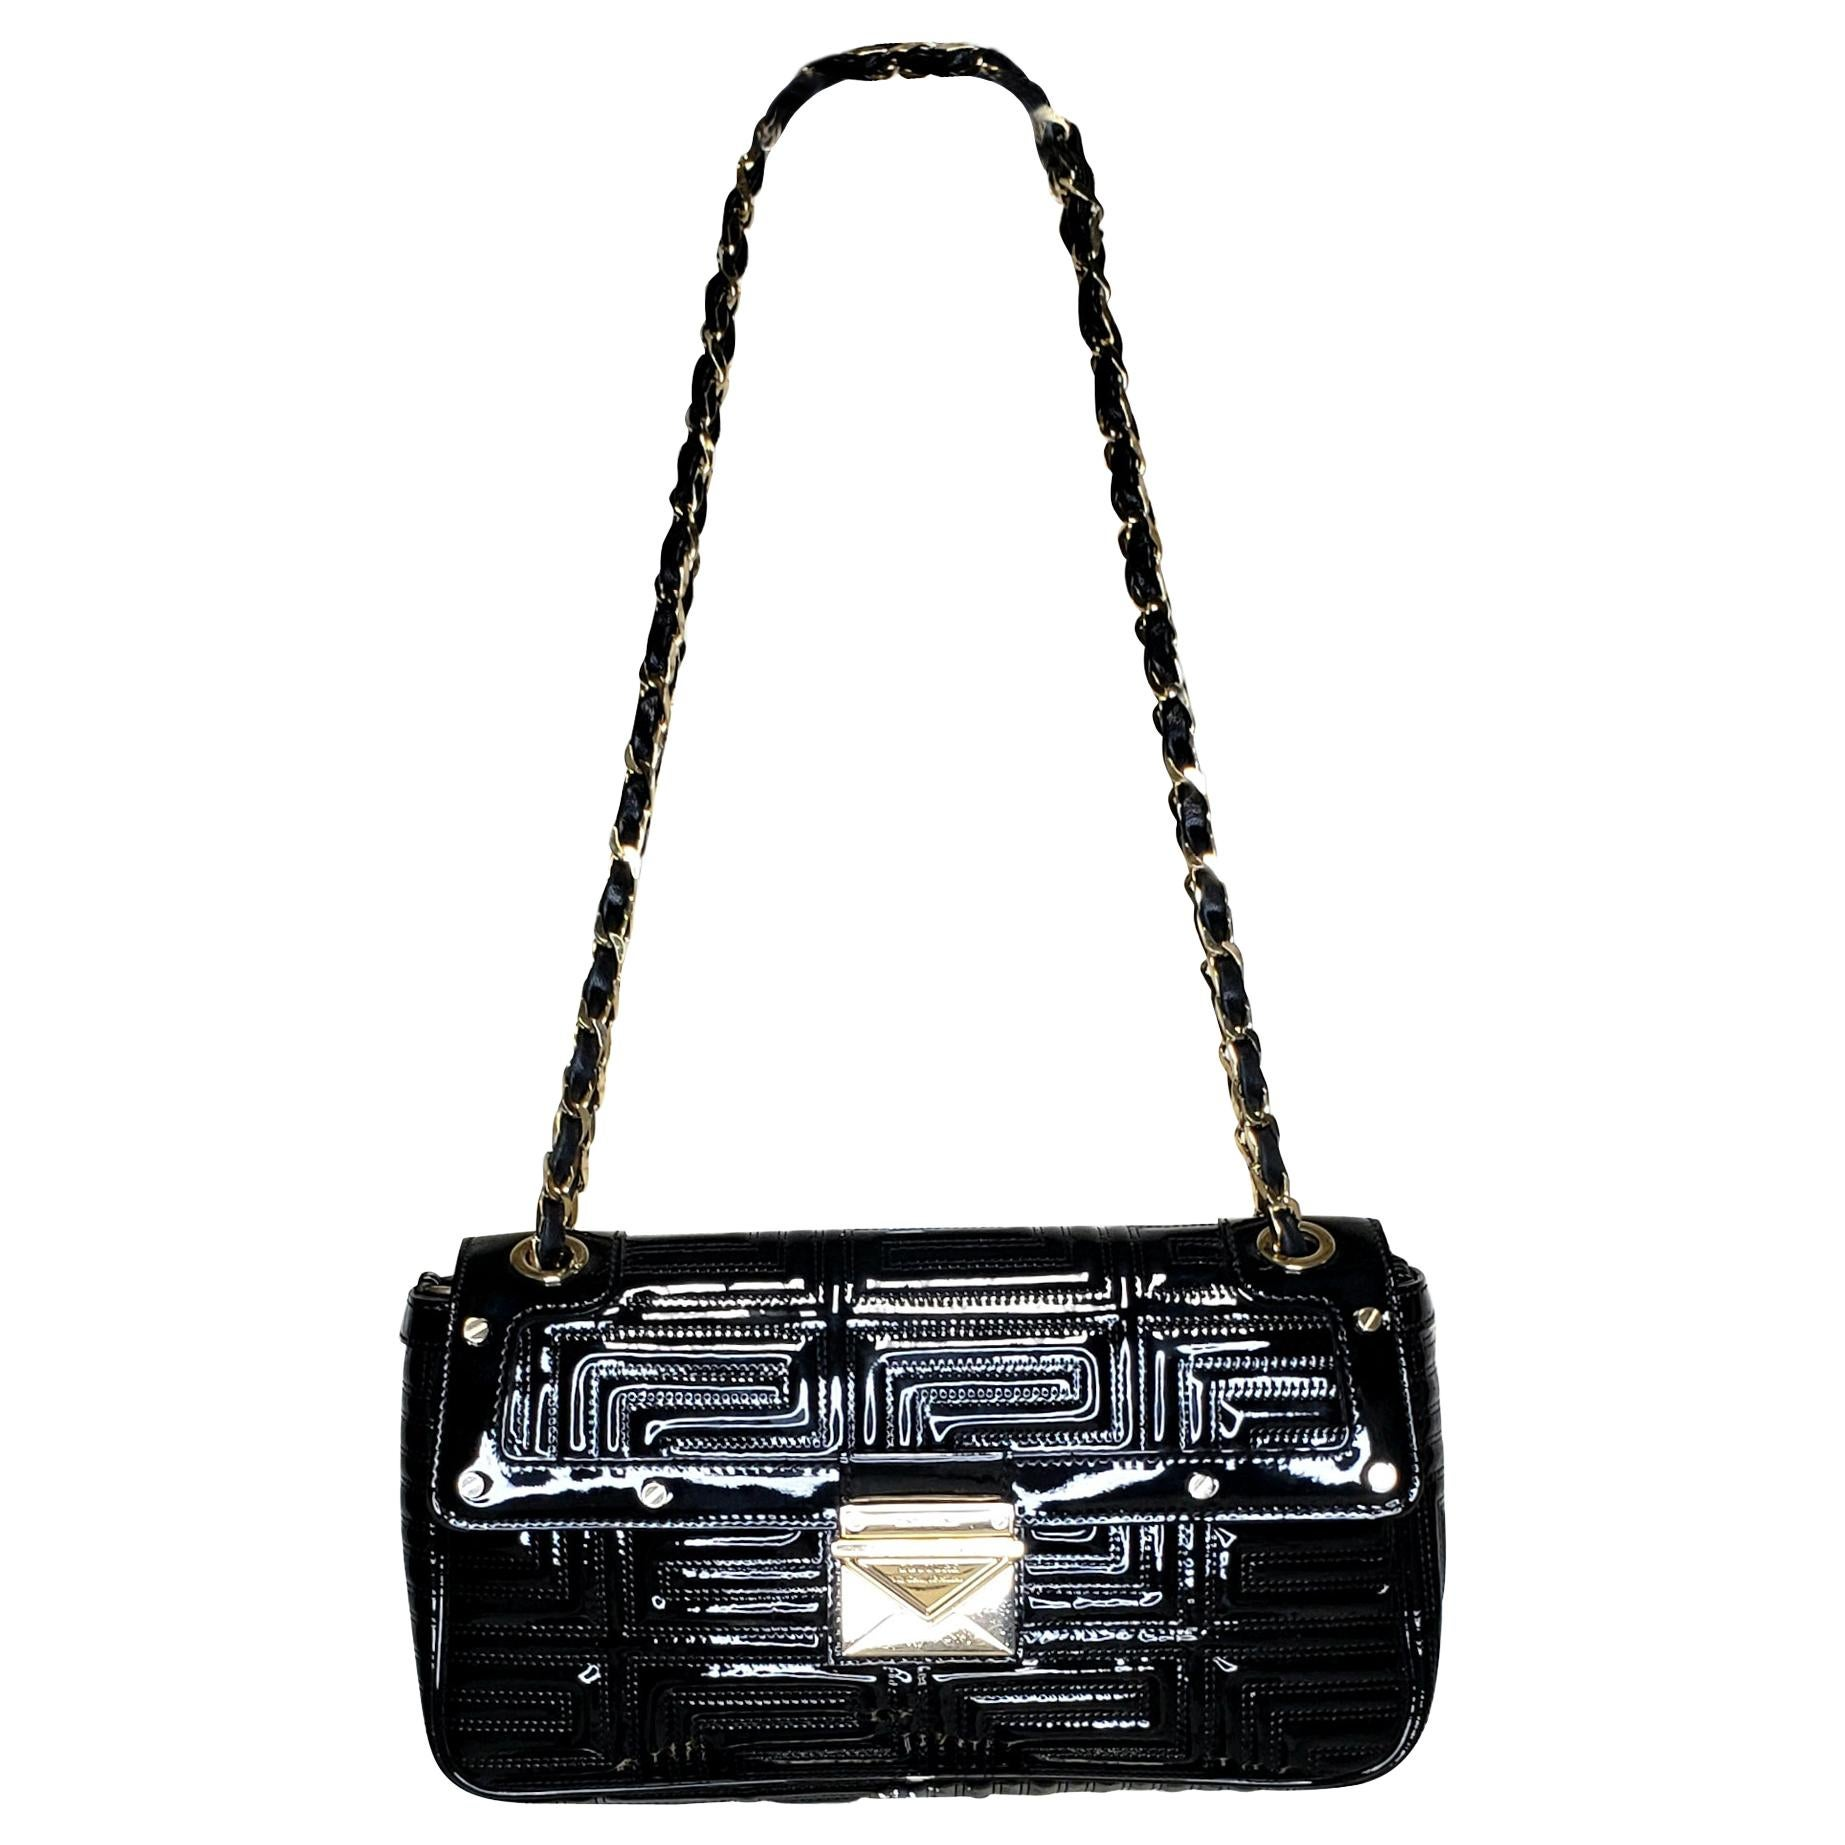 GIANNI VERSACE COUTURE BLACK PATENT QUILTED LEATHER SHOULDER Bag